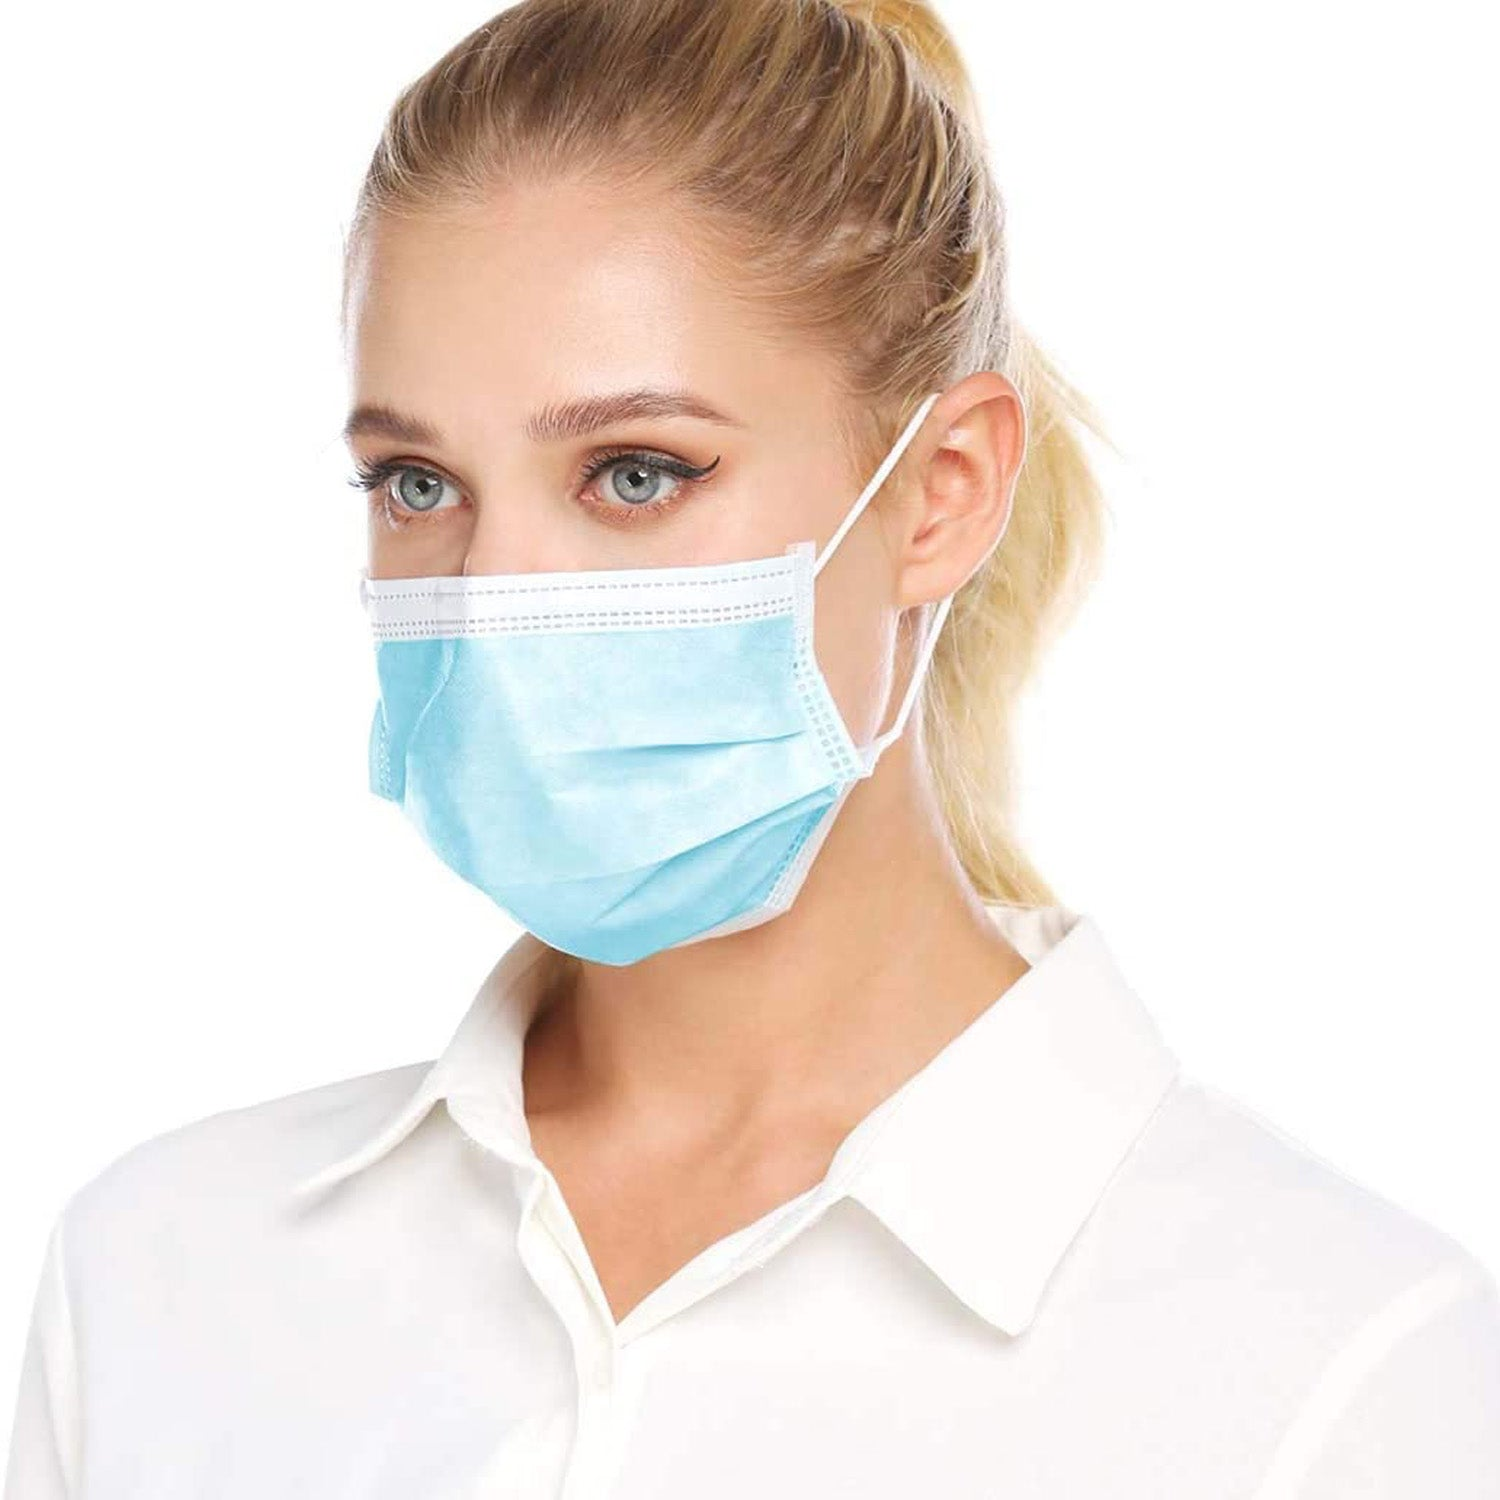 REST Safeguard 3ply Medical Disposable Facemask - 50 & 100 Piece Qty BRADS DEAL 50% DISCOUNT AUTOMATICALLY APPLIED IN CART